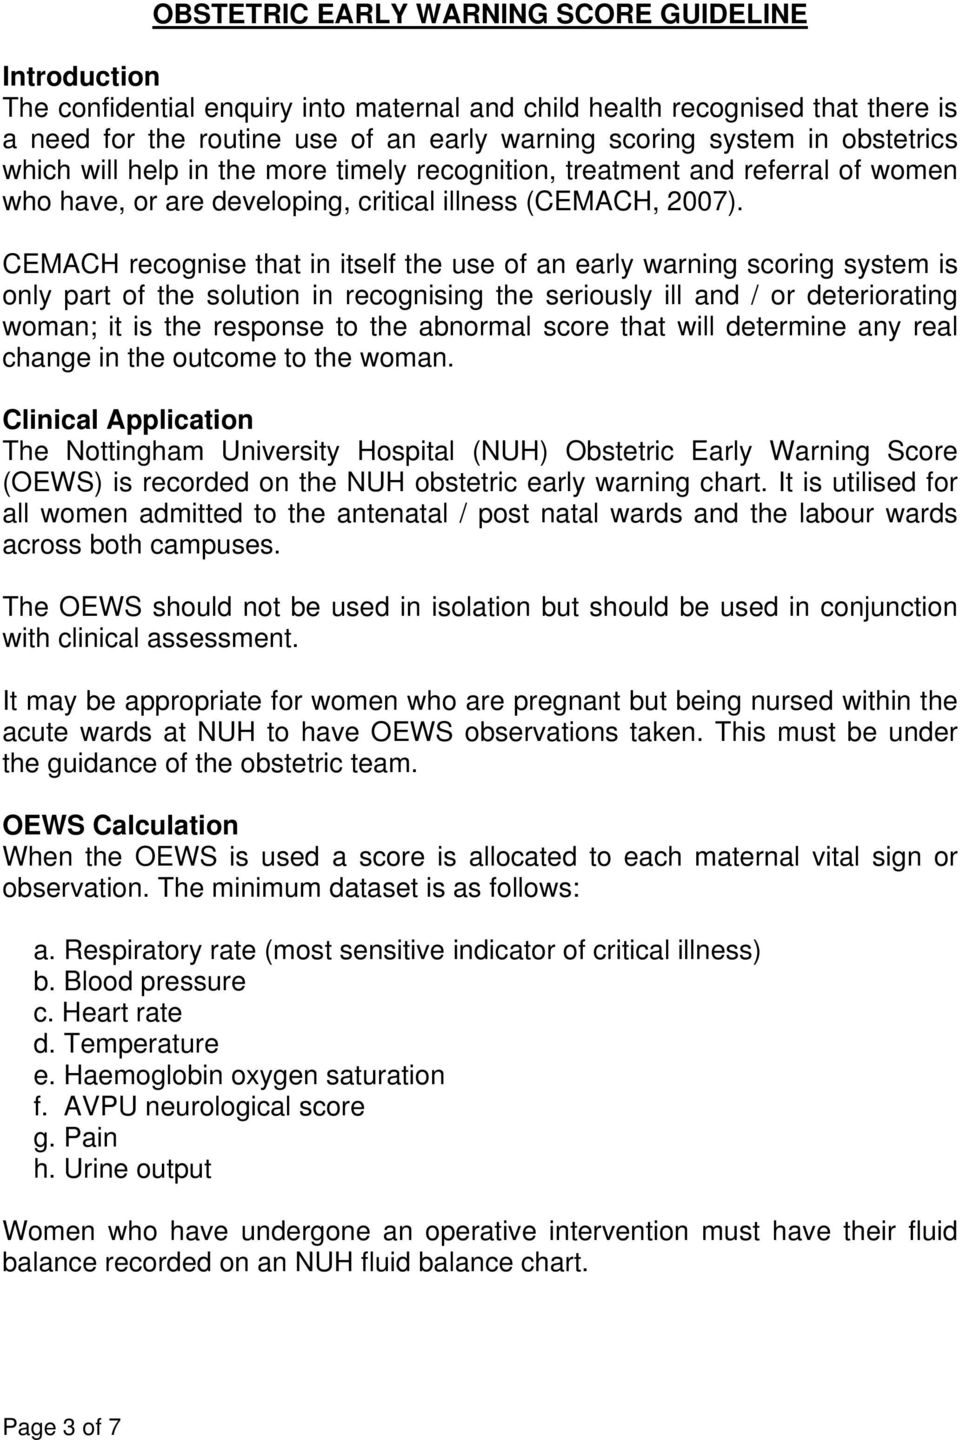 CEMACH recognise that in itself the use of an early warning scoring system is only part of the solution in recognising the seriously ill and / or deteriorating woman; it is the response to the